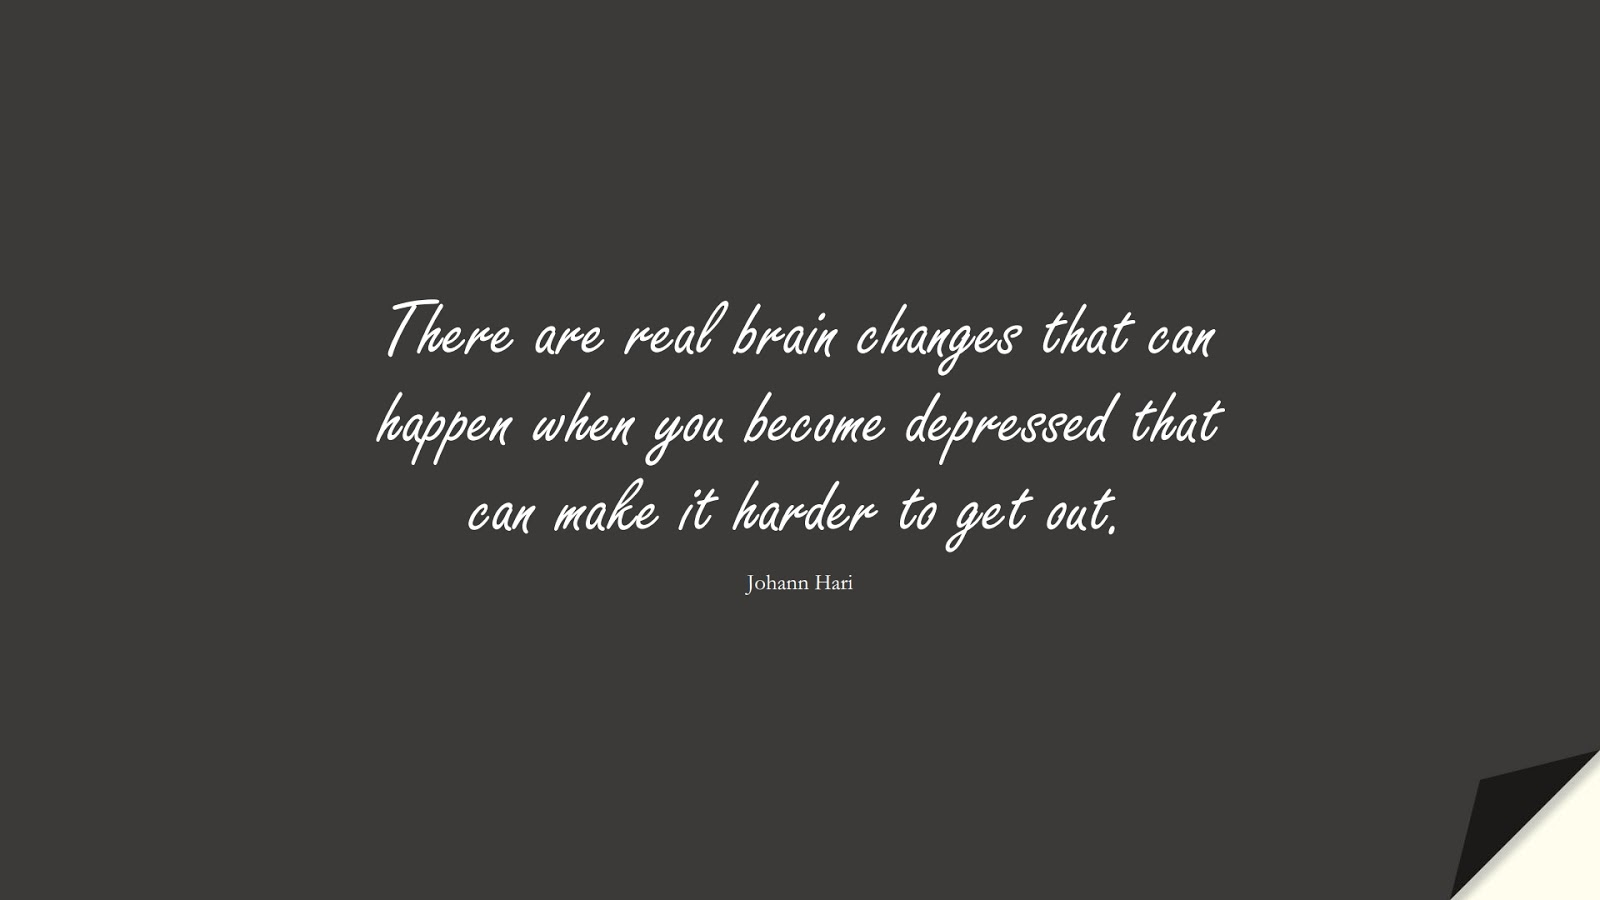 There are real brain changes that can happen when you become depressed that can make it harder to get out. (Johann Hari);  #DepressionQuotes